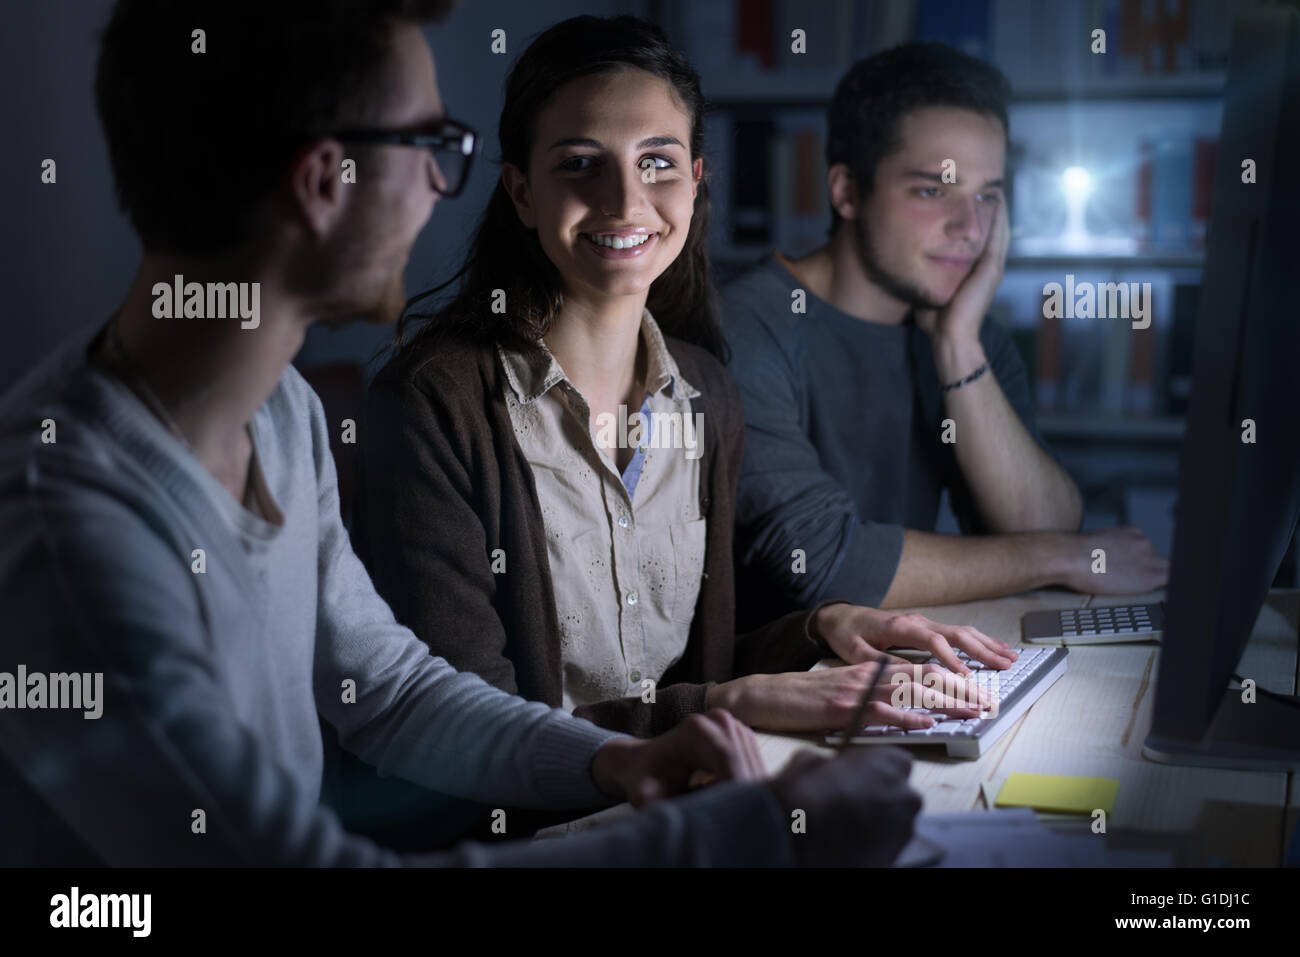 Teenagers studying late at night using a computer in a dark room, technology and communications concept - Stock Image